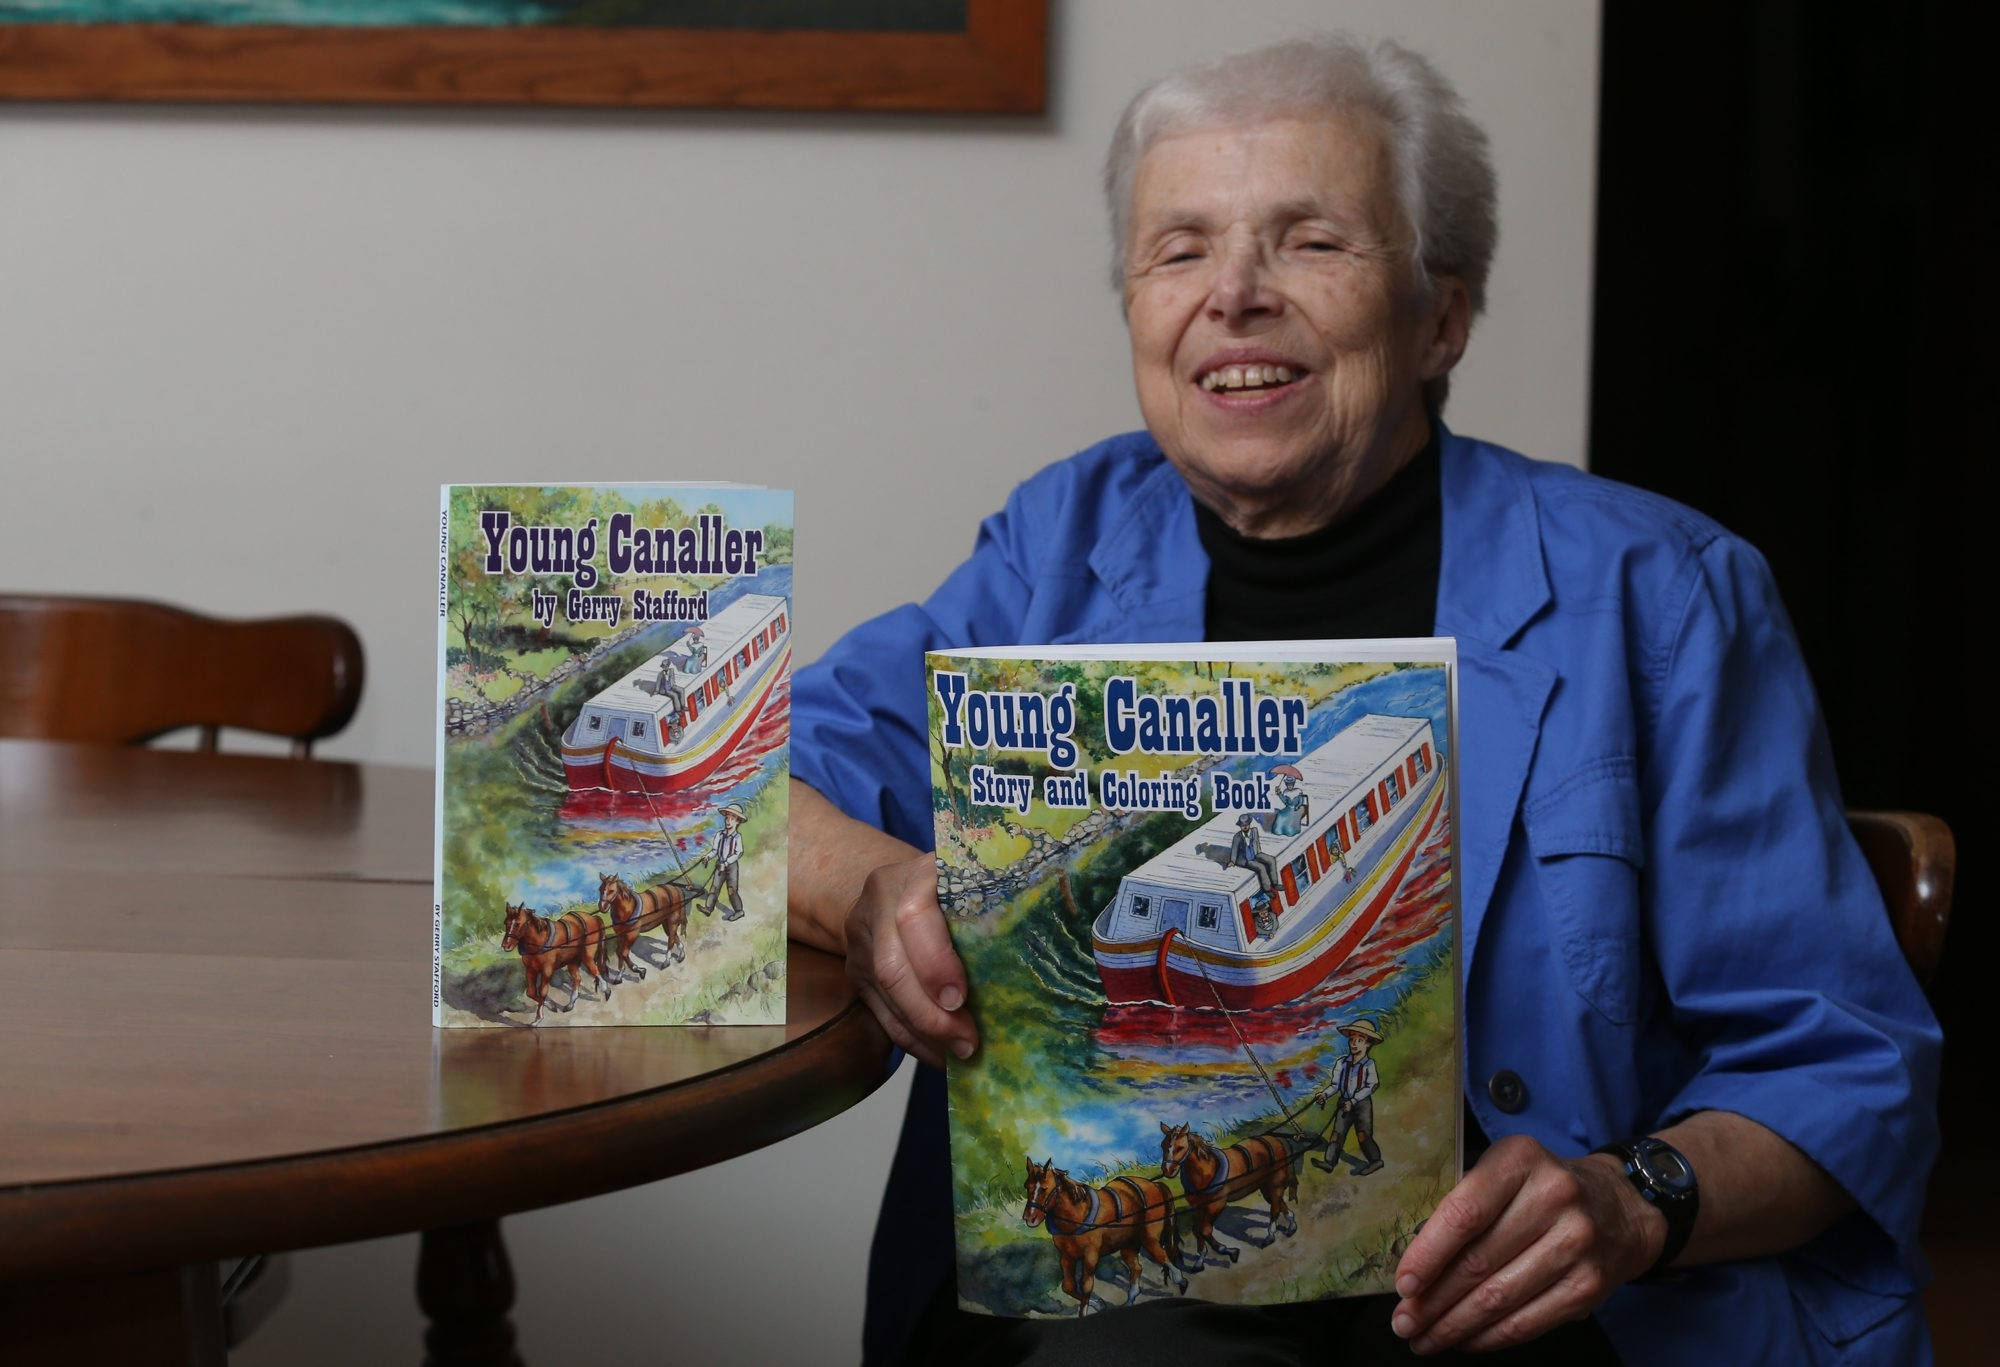 Retired teacher Gerry Stafford wrote two books on the Erie Canal, one geared to fourth graders, and a companion coloring book for younger children.